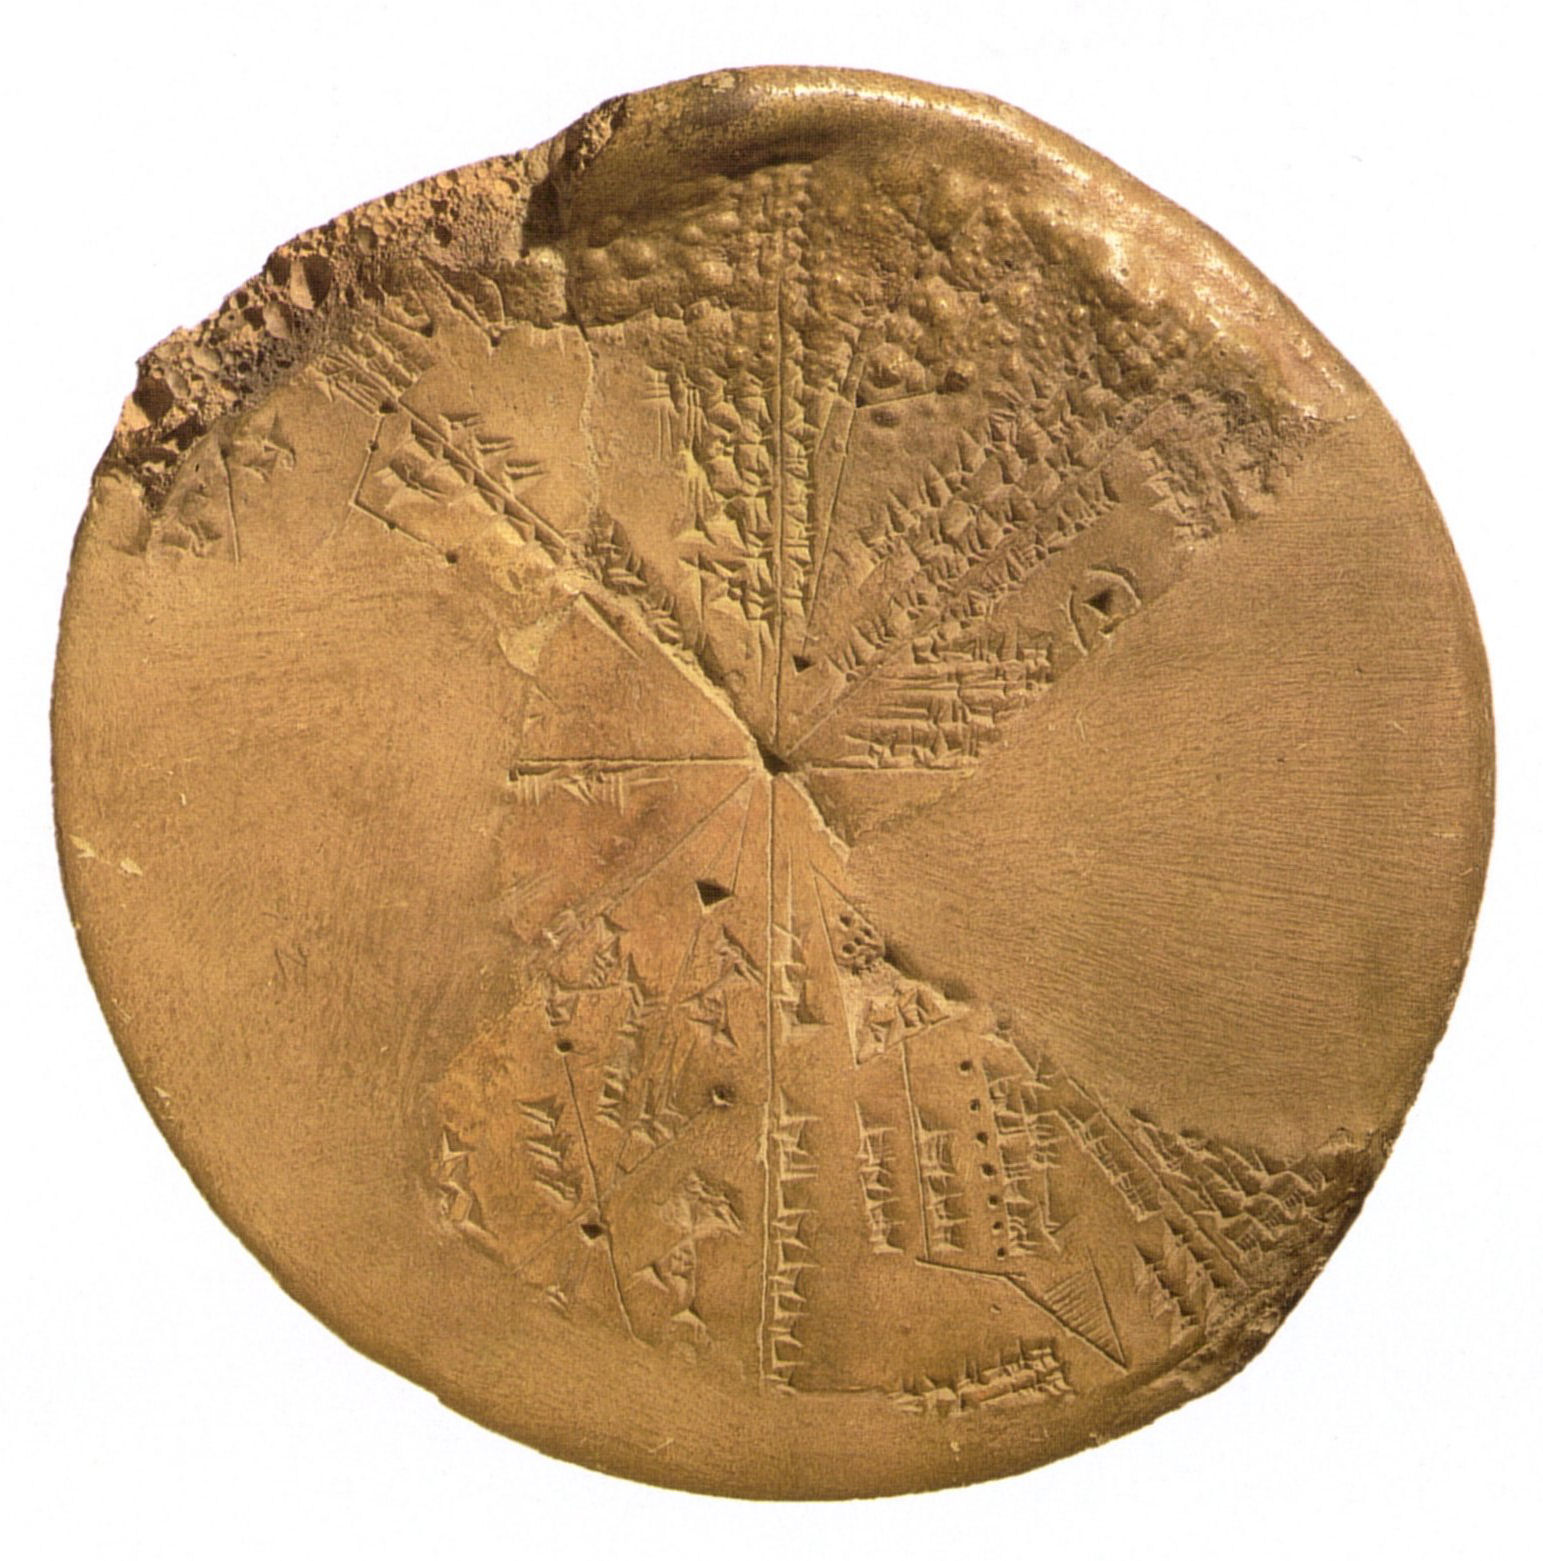 babylonian astrology and astronomy - photo #14